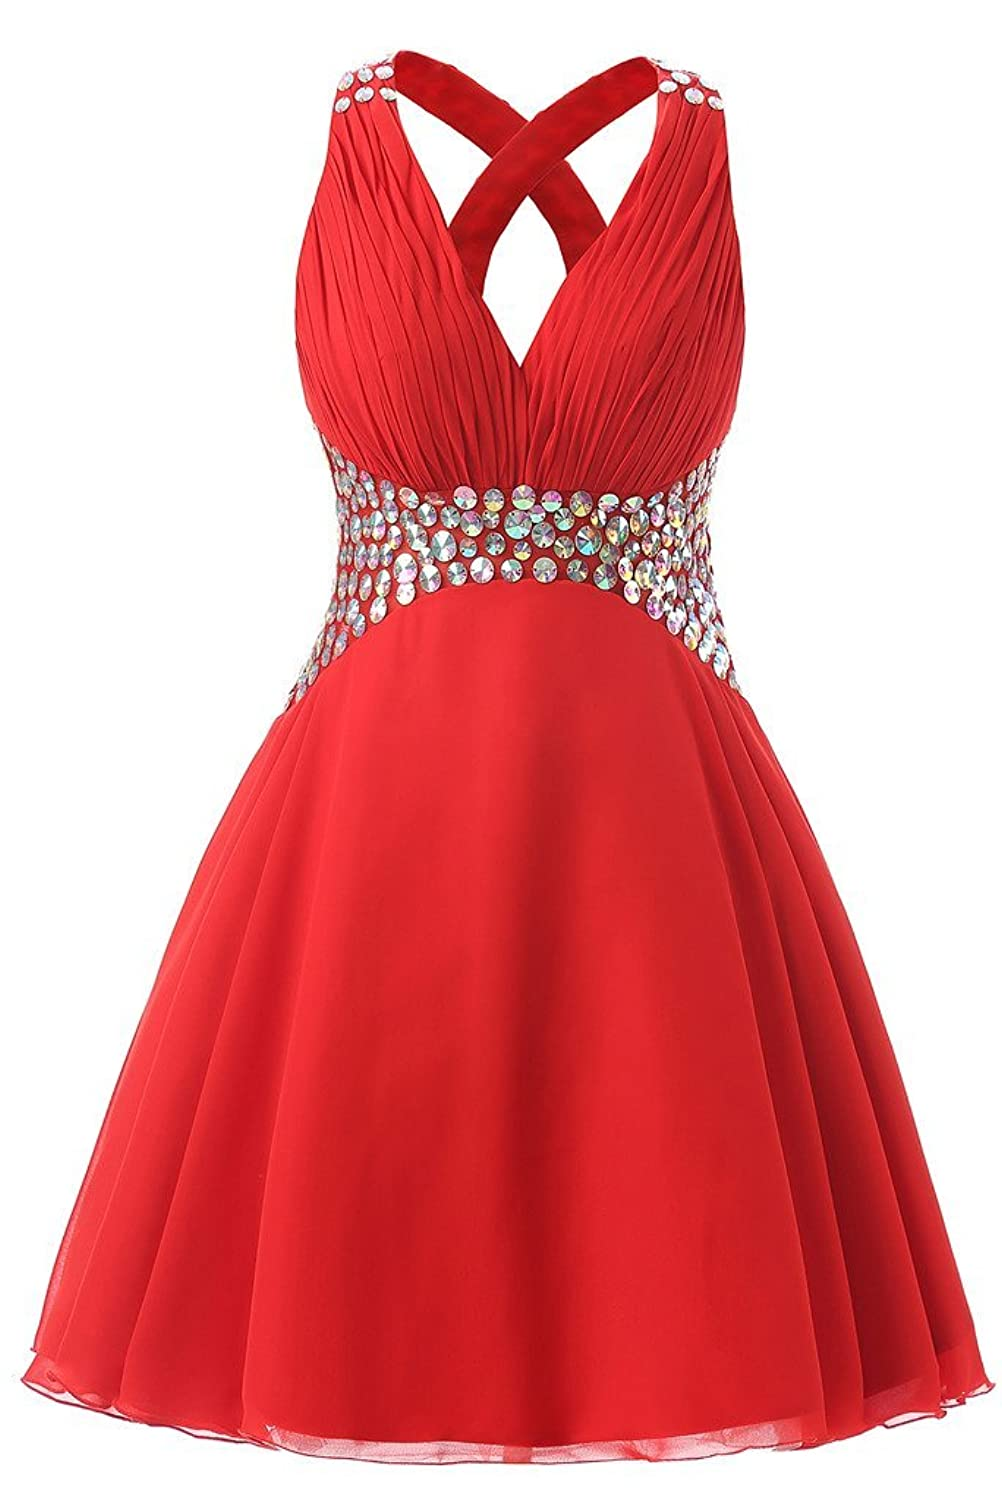 Drasawee Halter Rhinestones Homecoming Cocktail Ball Dress Short V-Neck Evening Prom Gowns